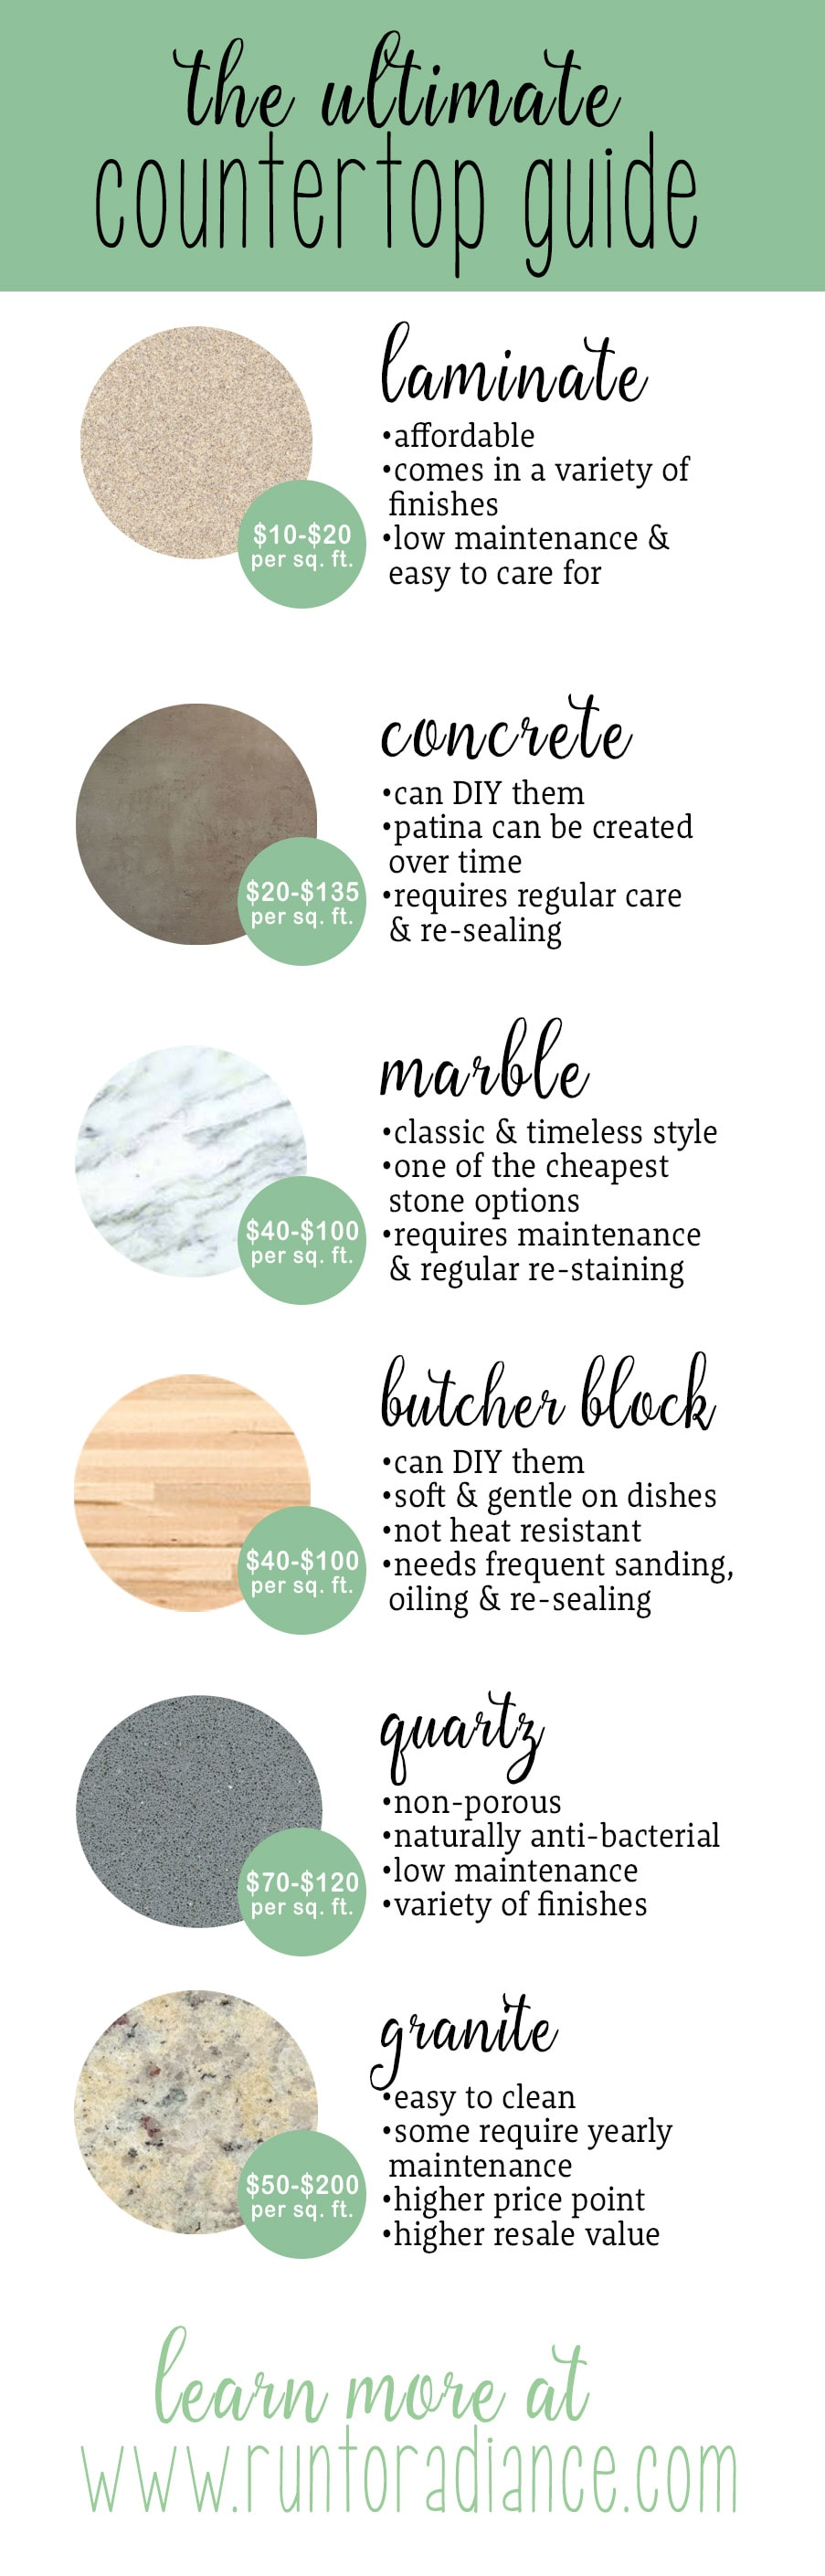 I've been wondering what kitchen countertops to get - so many great options here! I need cheap countertops - not sure if I should do DIY countertops or something else! This guide is so helpful.